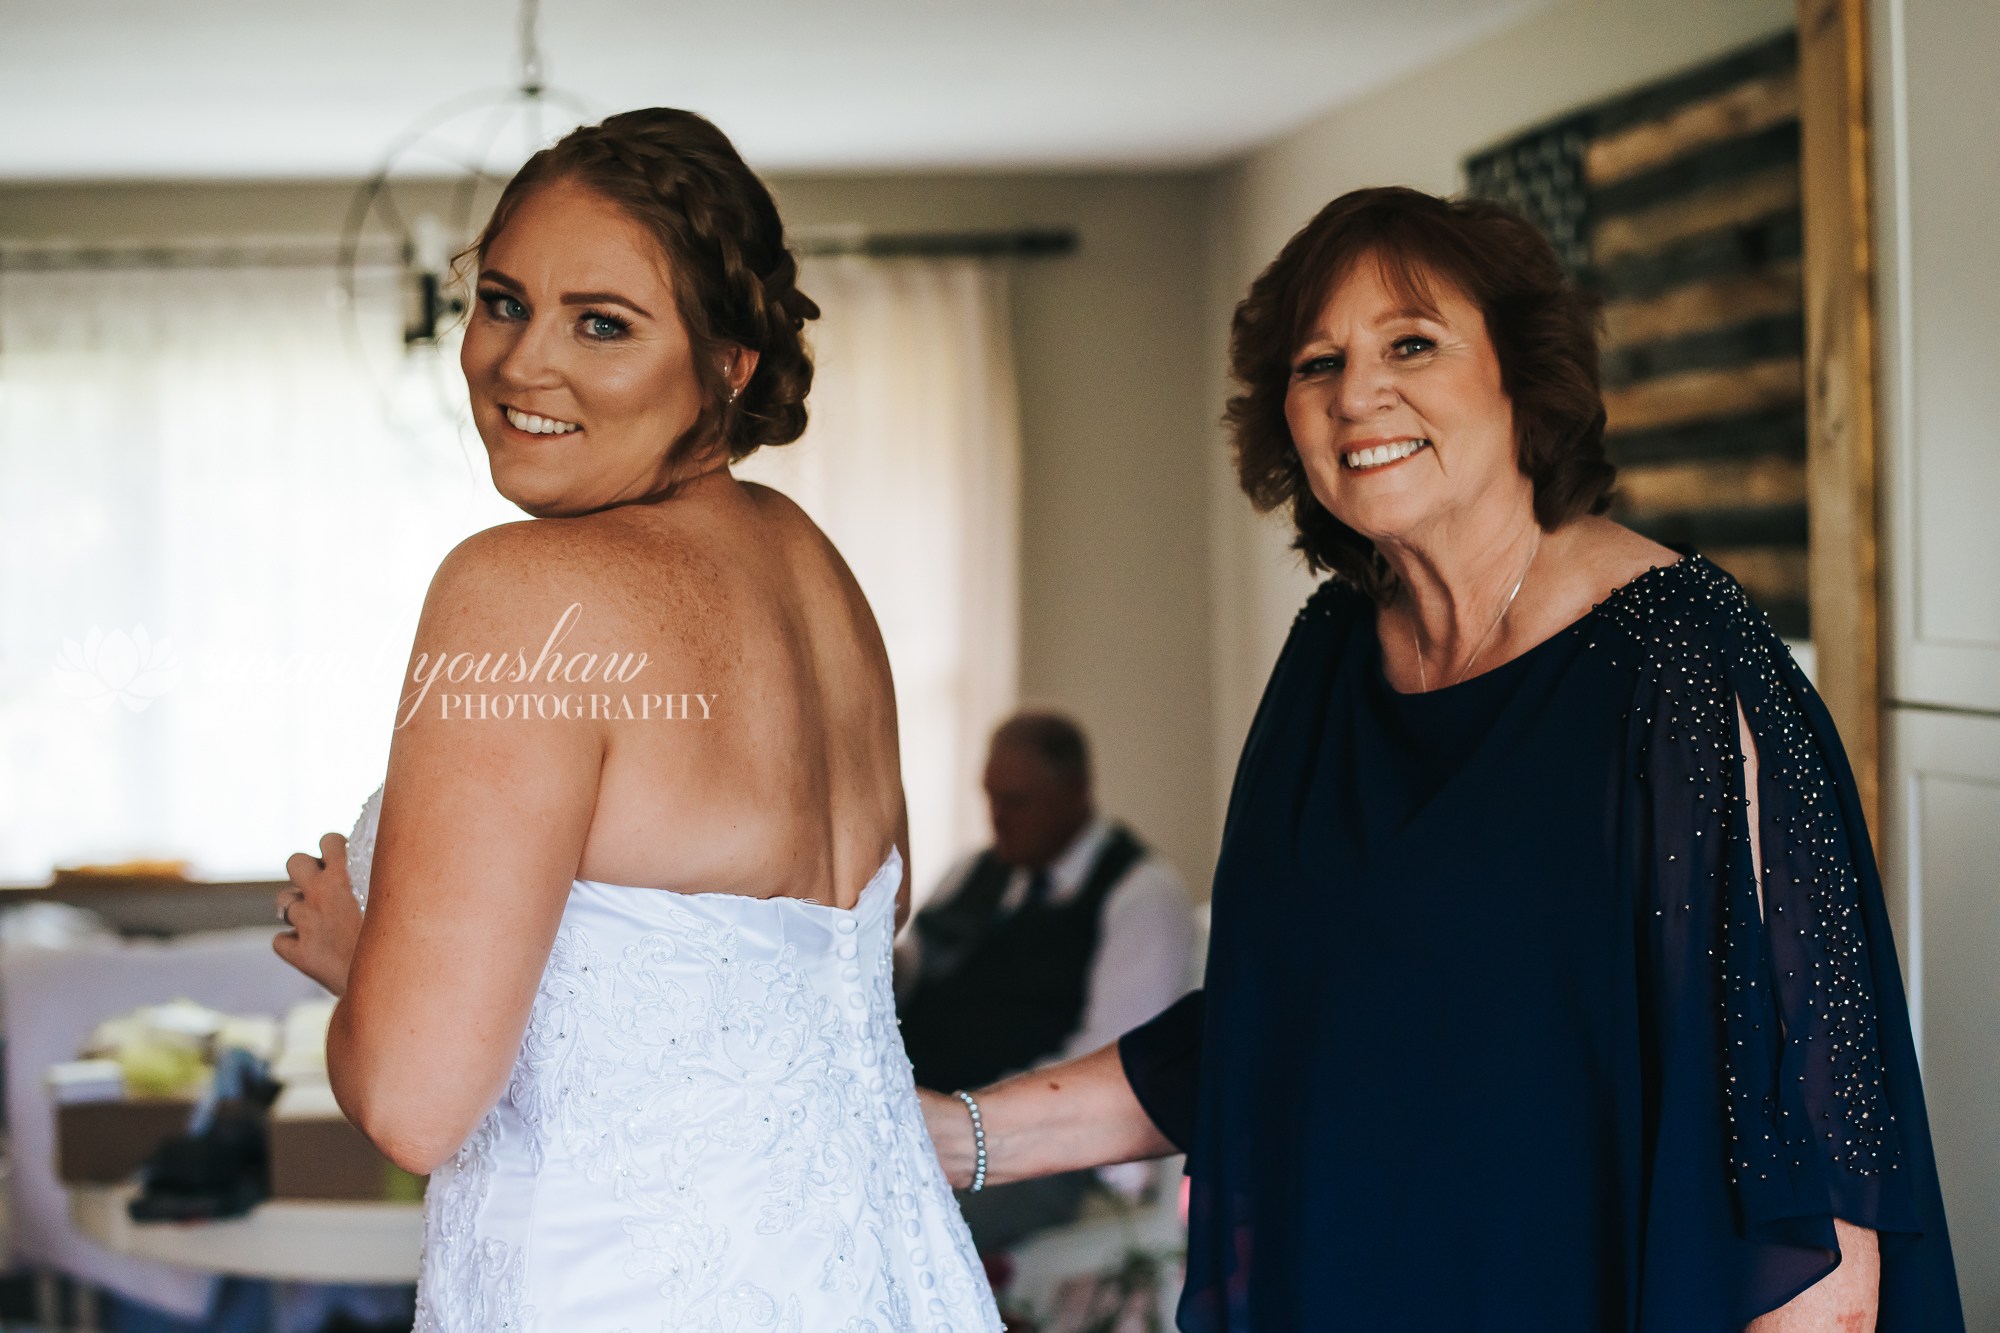 Erin and Jason Wedding Photos 07-06-2019 SLY Photography-24.jpg